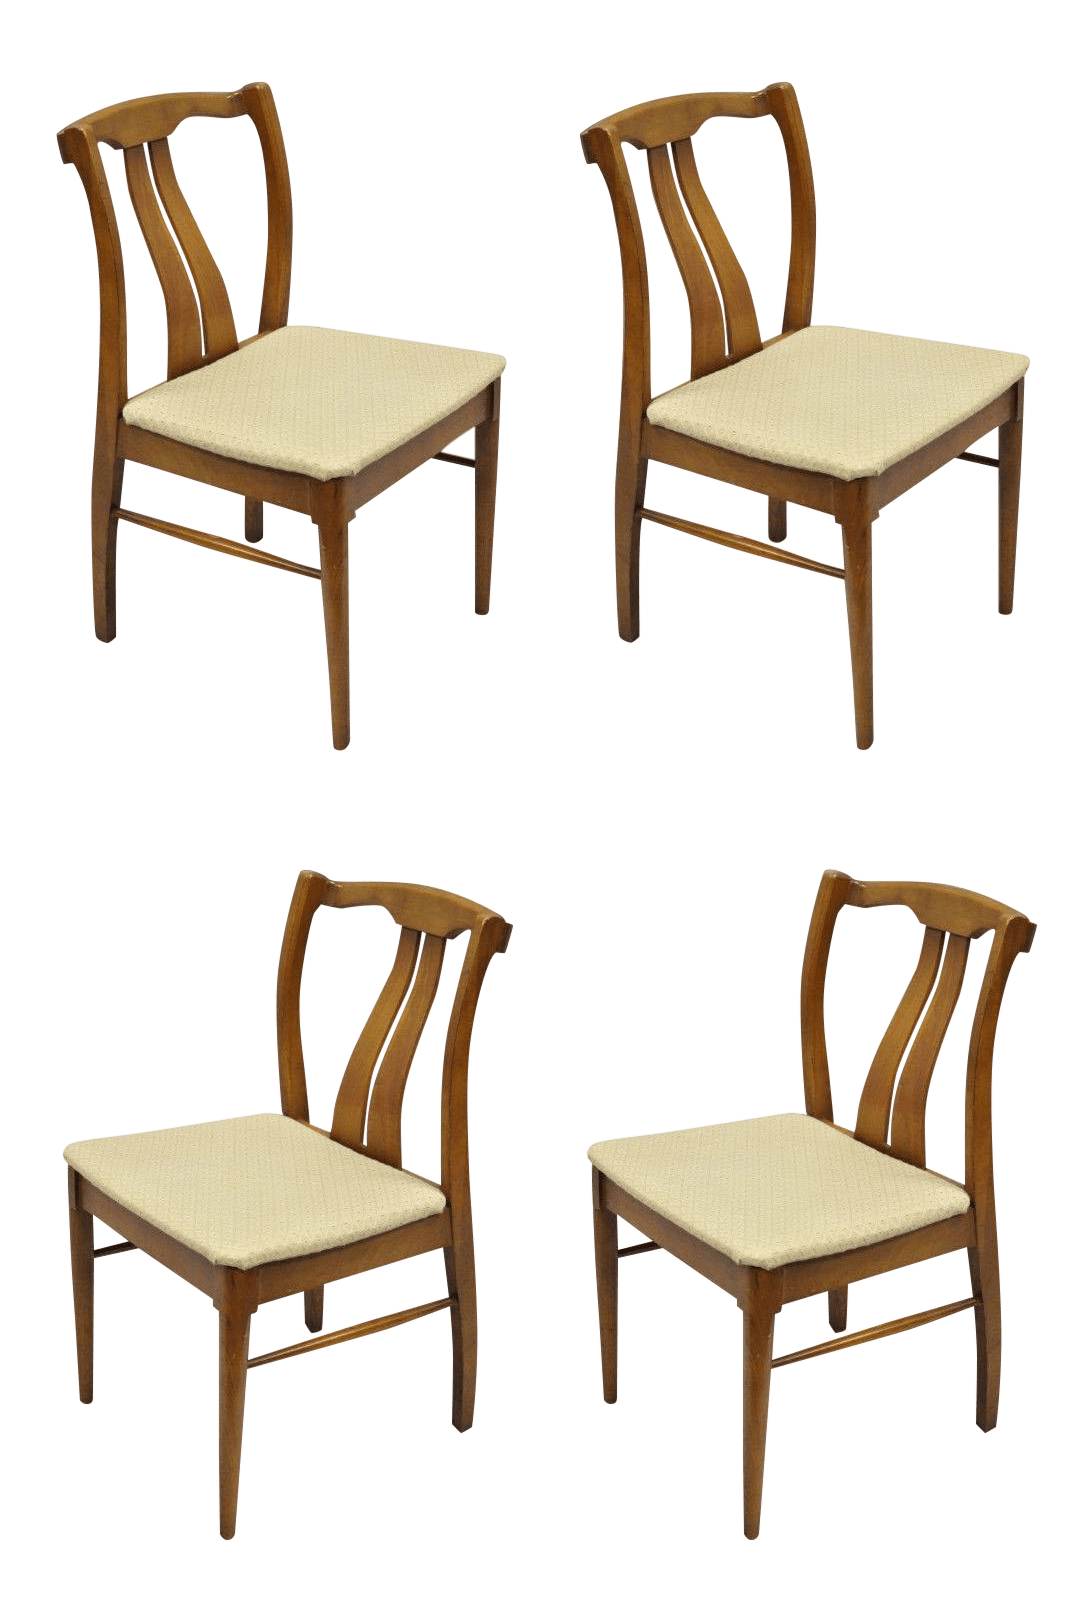 Vintage Mid Century Modern Curved Back Walnut Dining Chairs Set Of 4